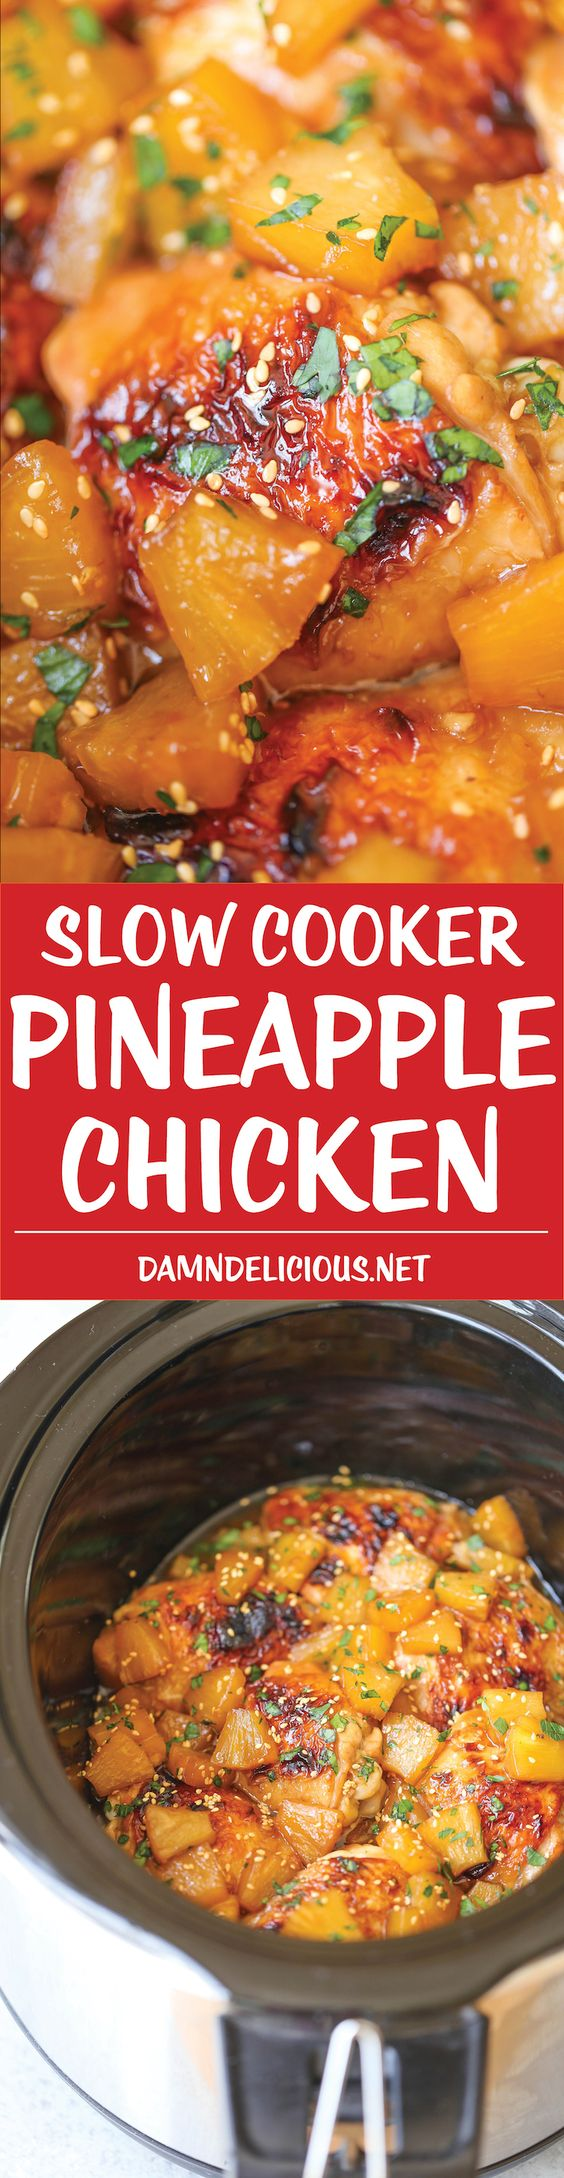 Slow Cooker Pineapple Chicken - Sweet, tangy chicken made right in ...